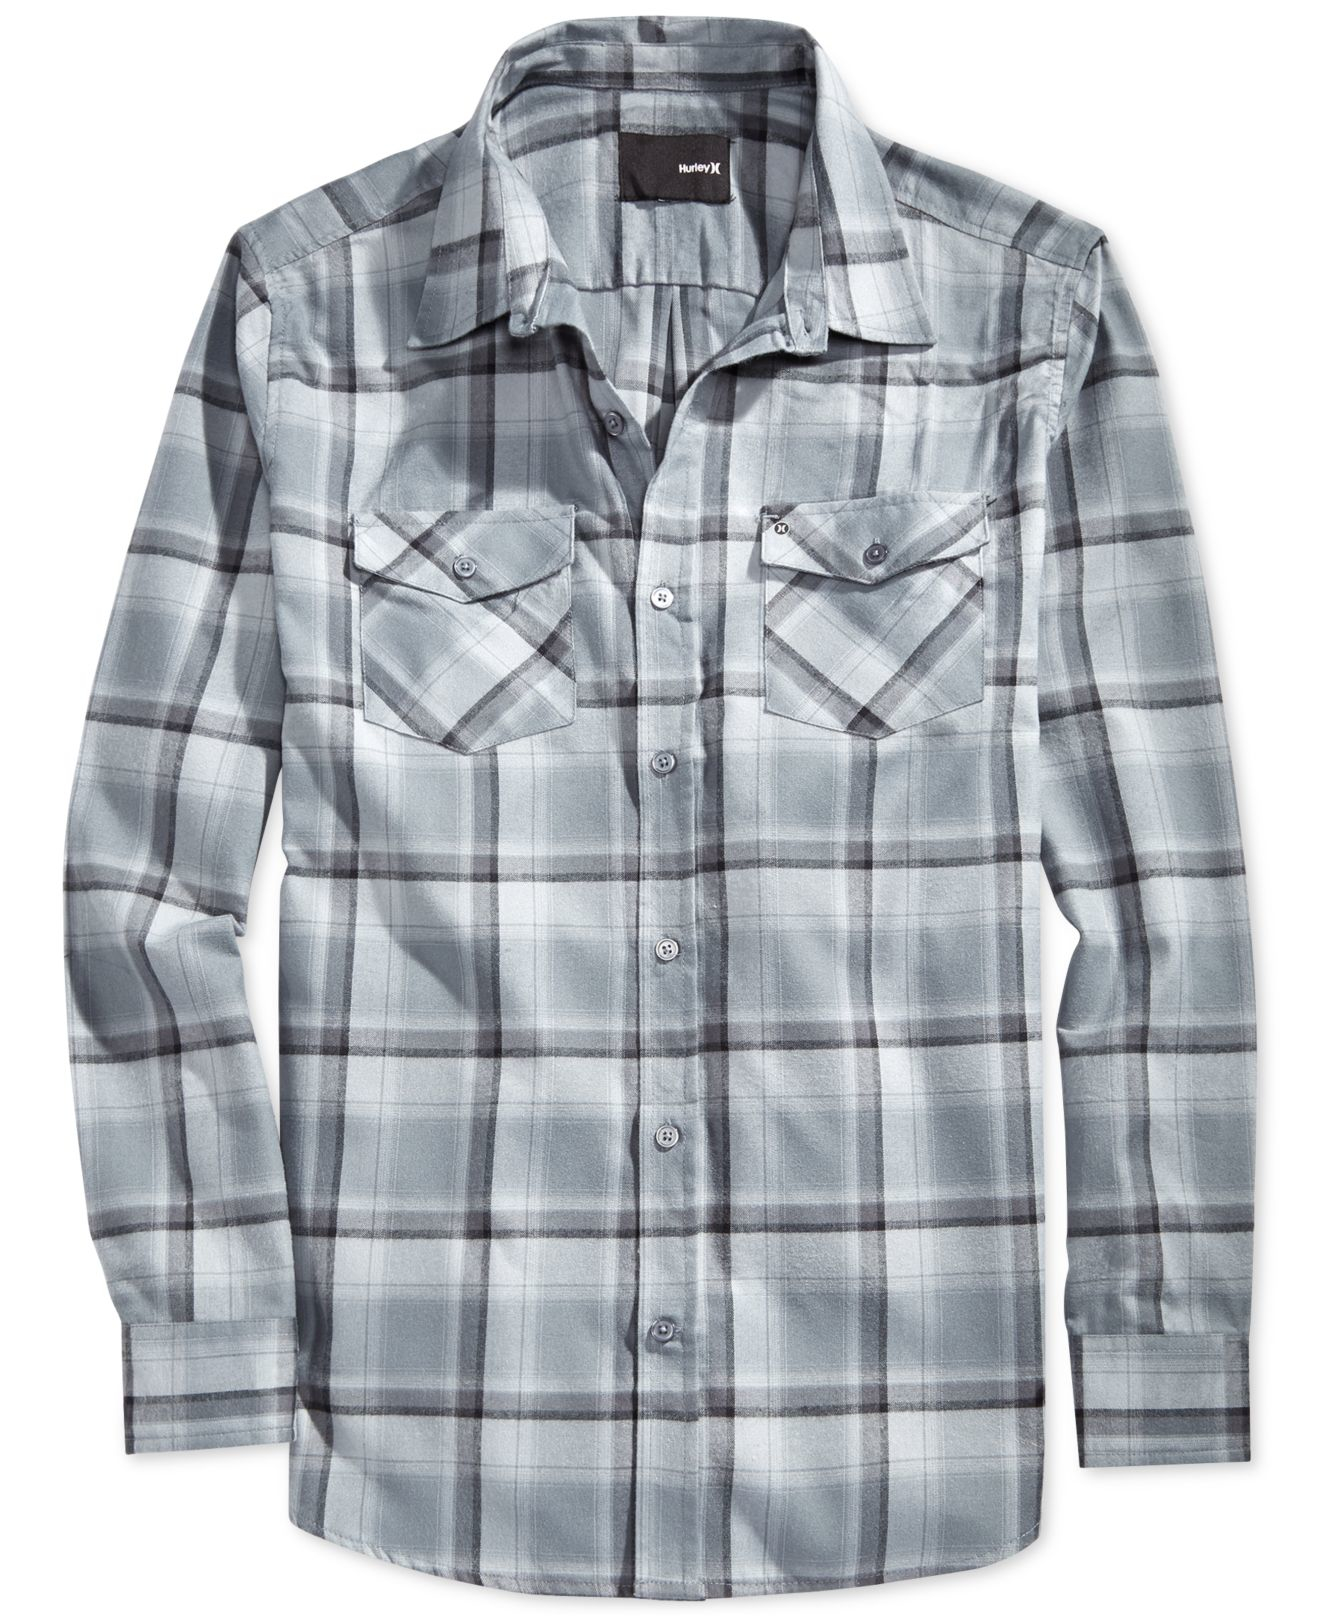 Lyst Hurley Bailey Dri Fit Plaid Long Sleeve Shirt In Gray For Men